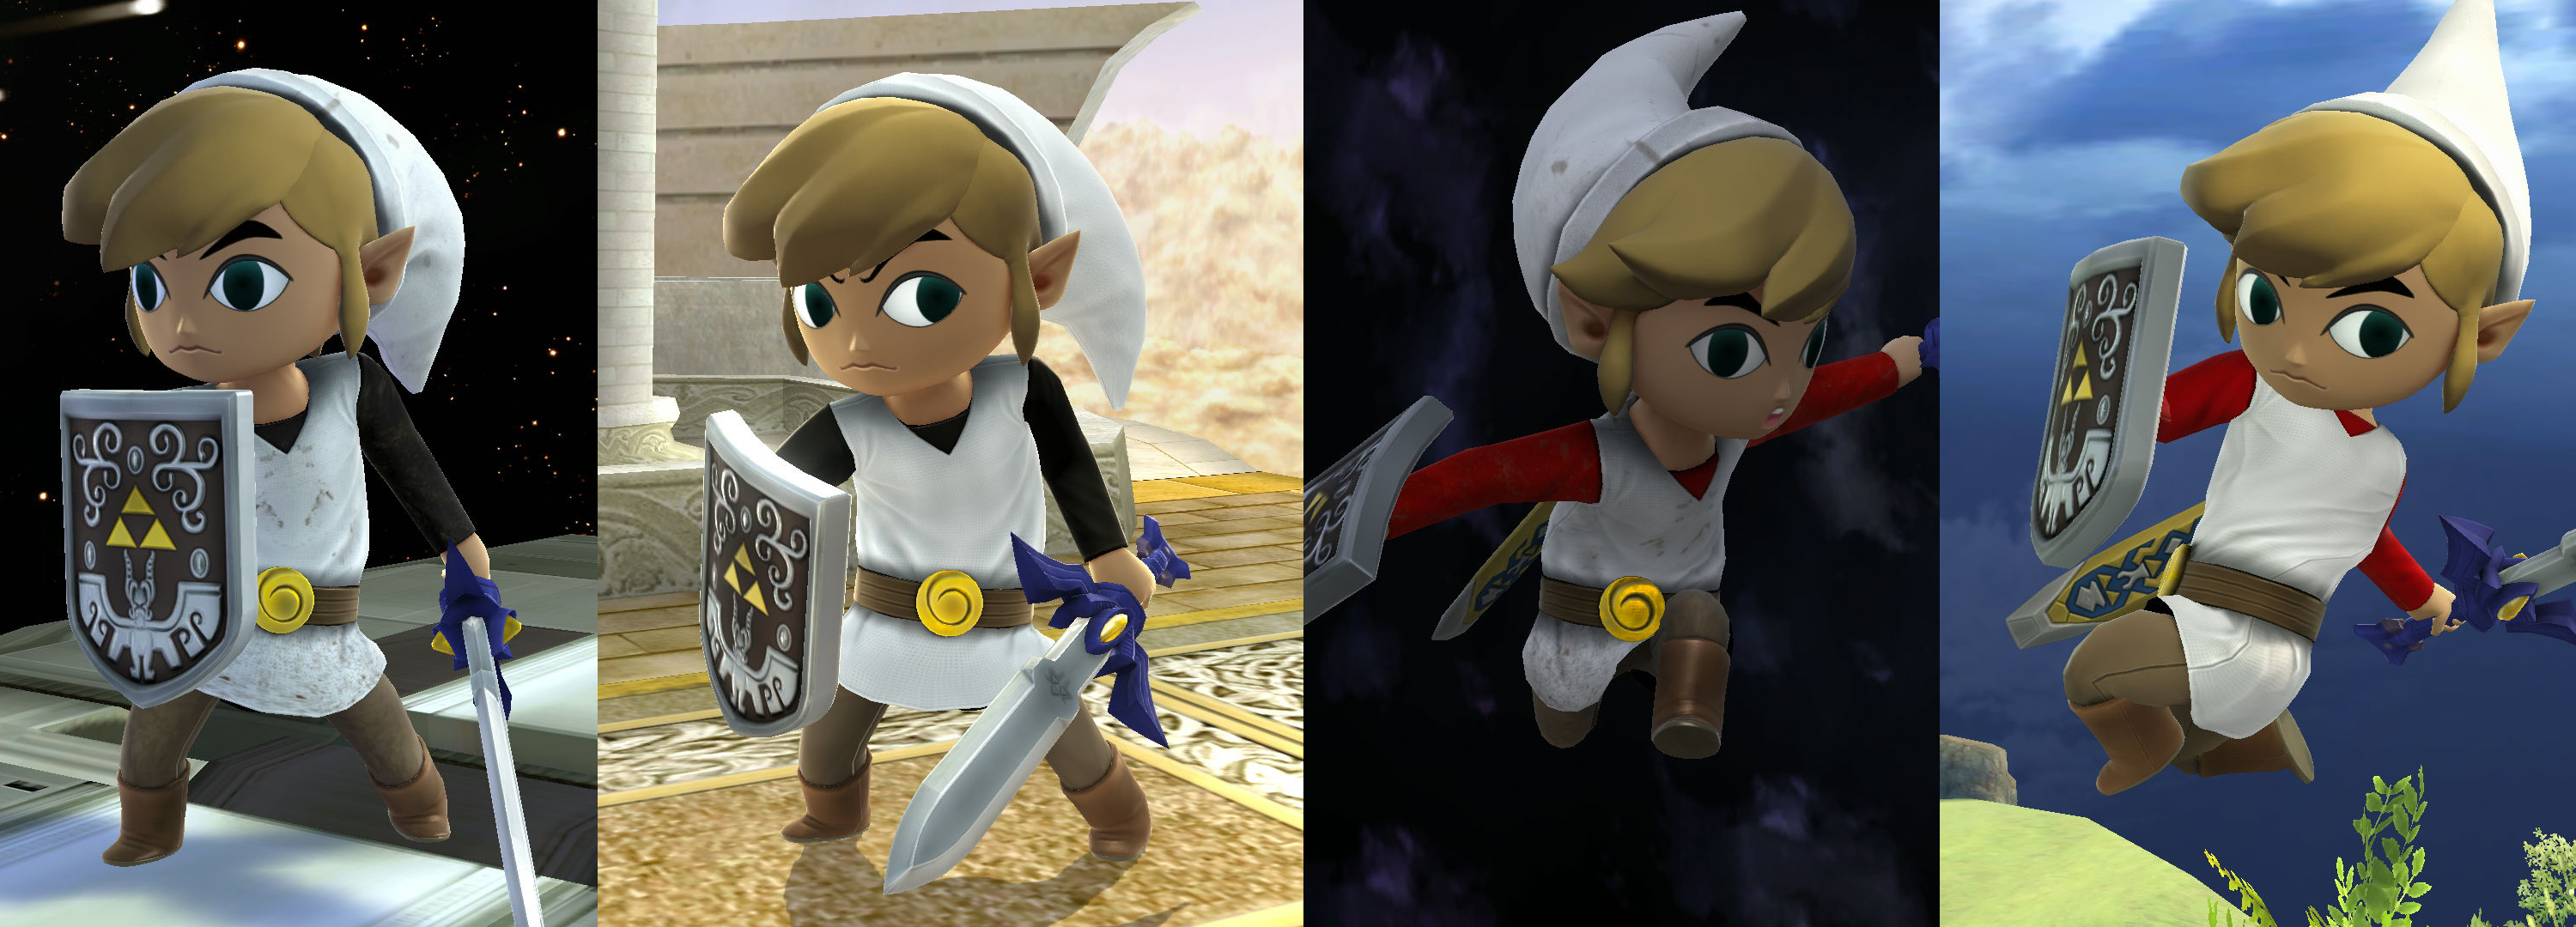 Toon Link WR-WB/Dirty